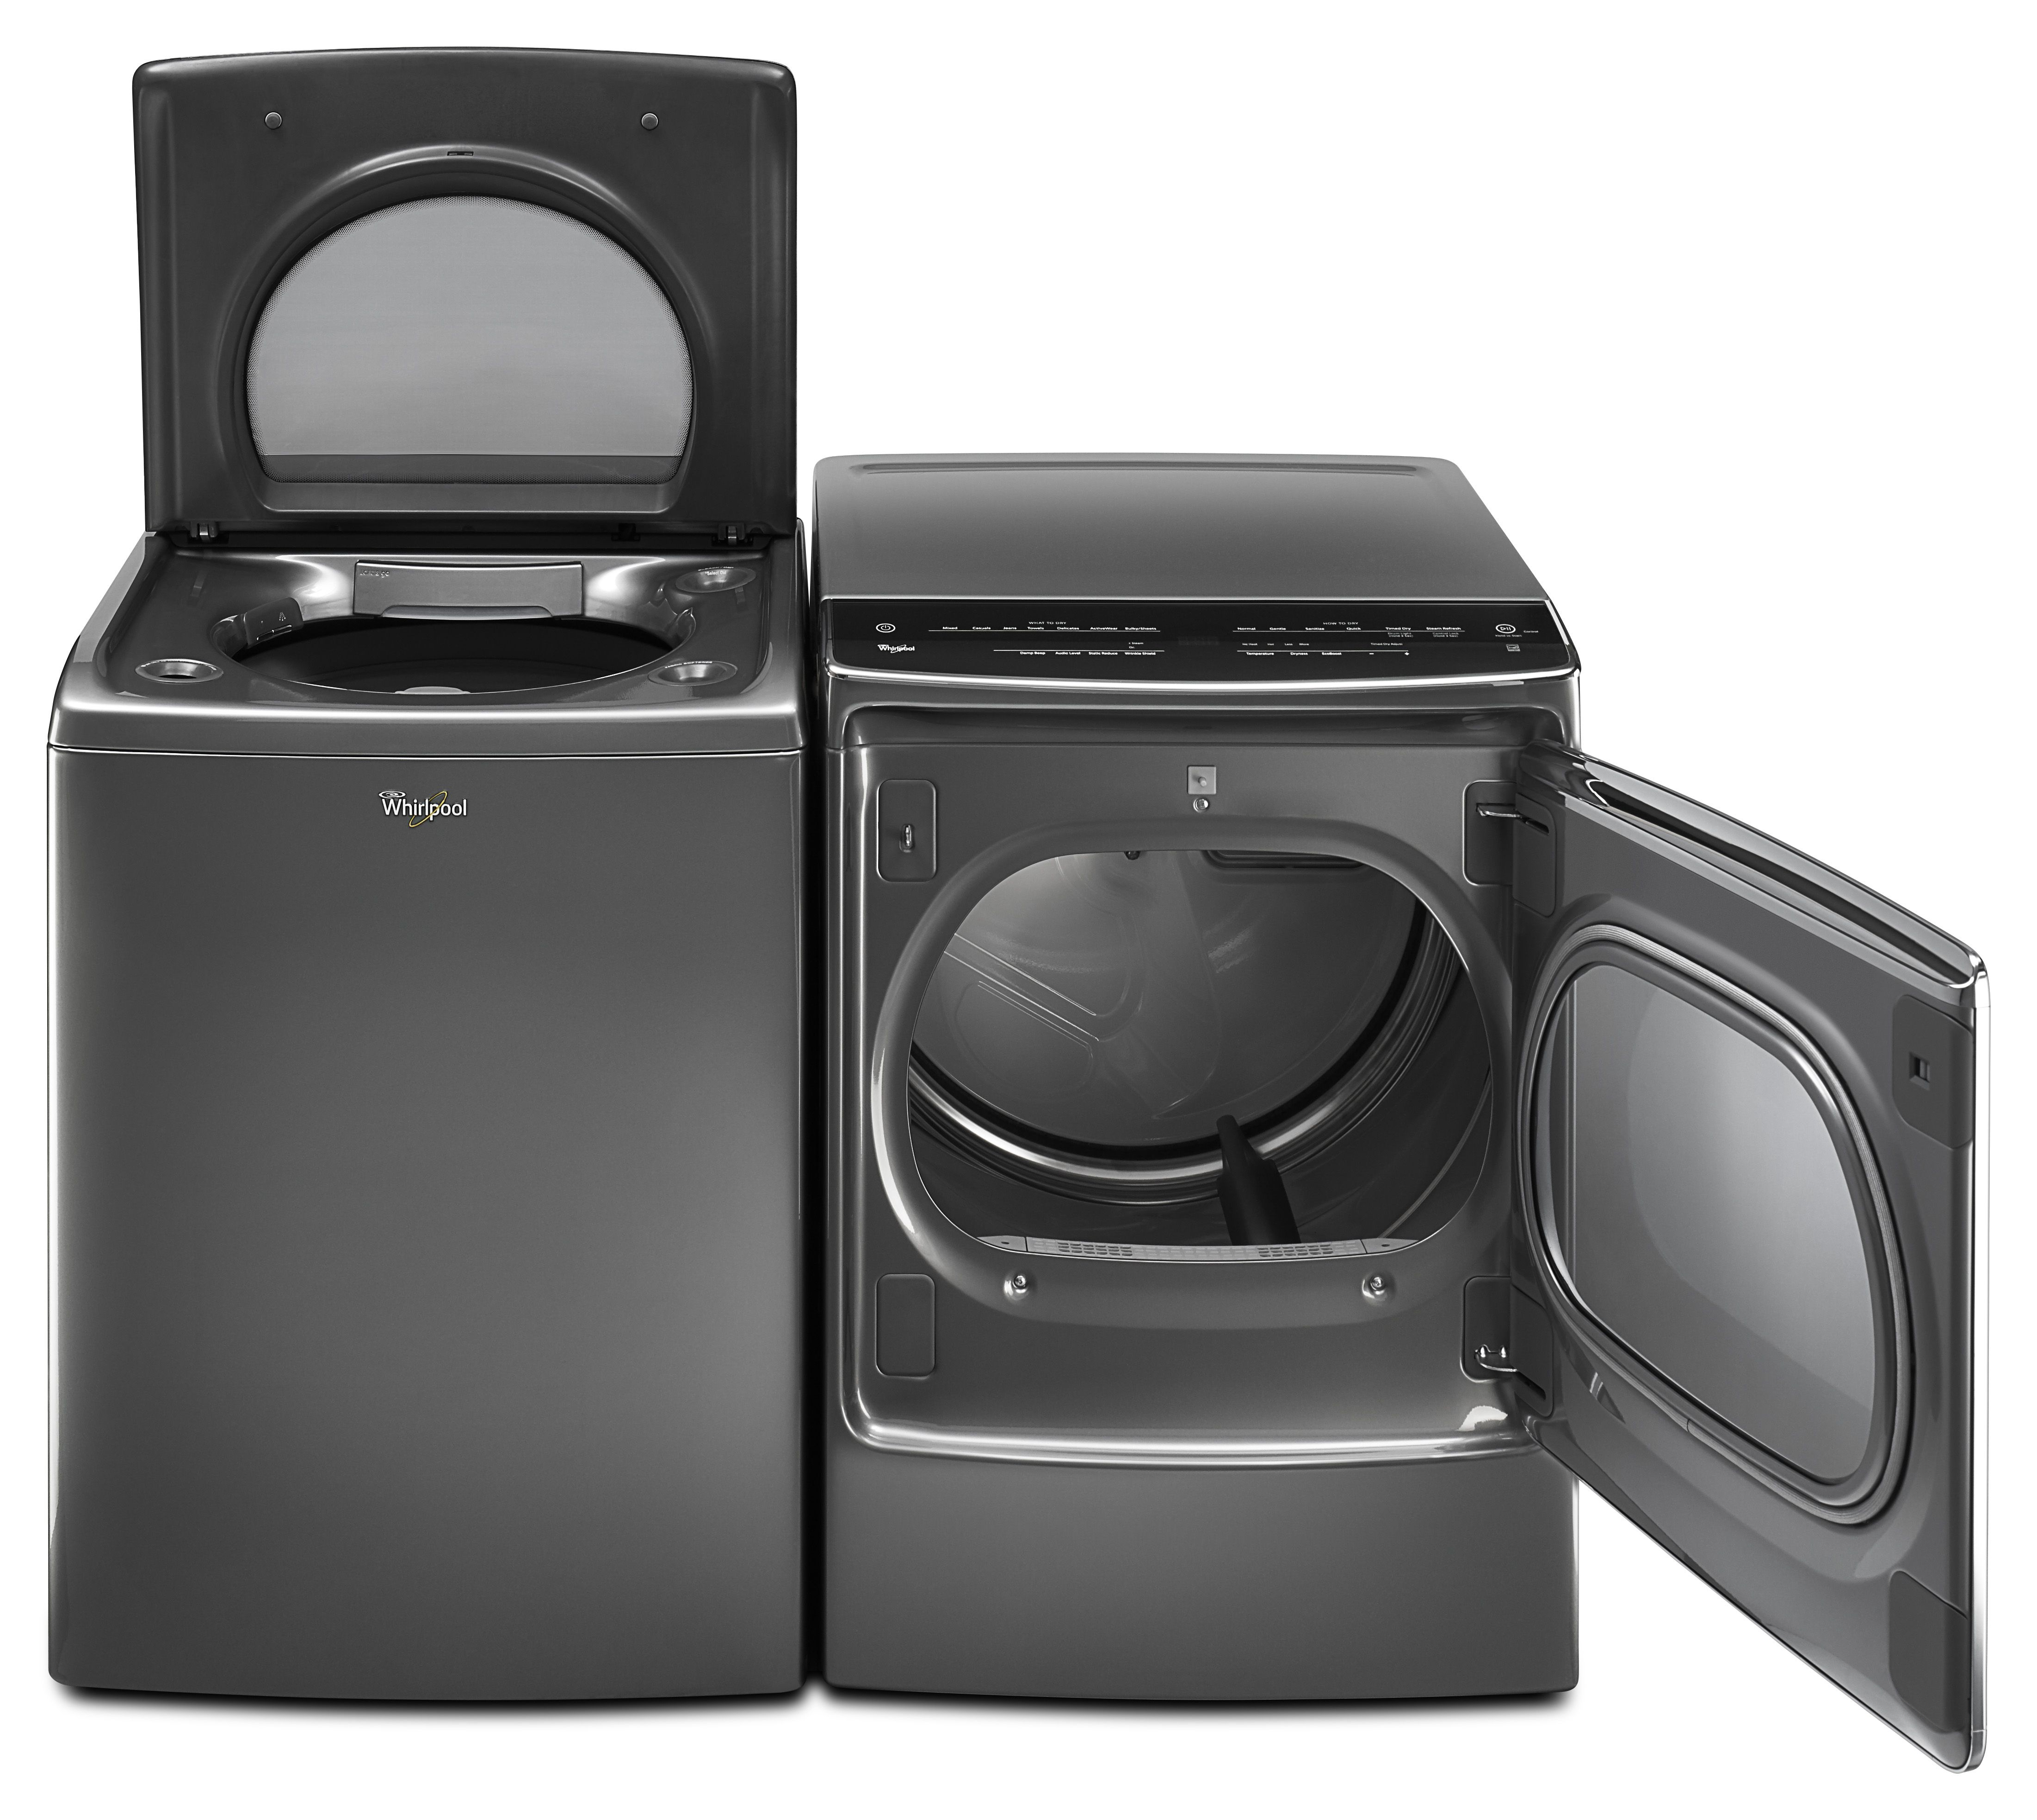 Good Lessen your laundry load with Whirlpool us massive washer